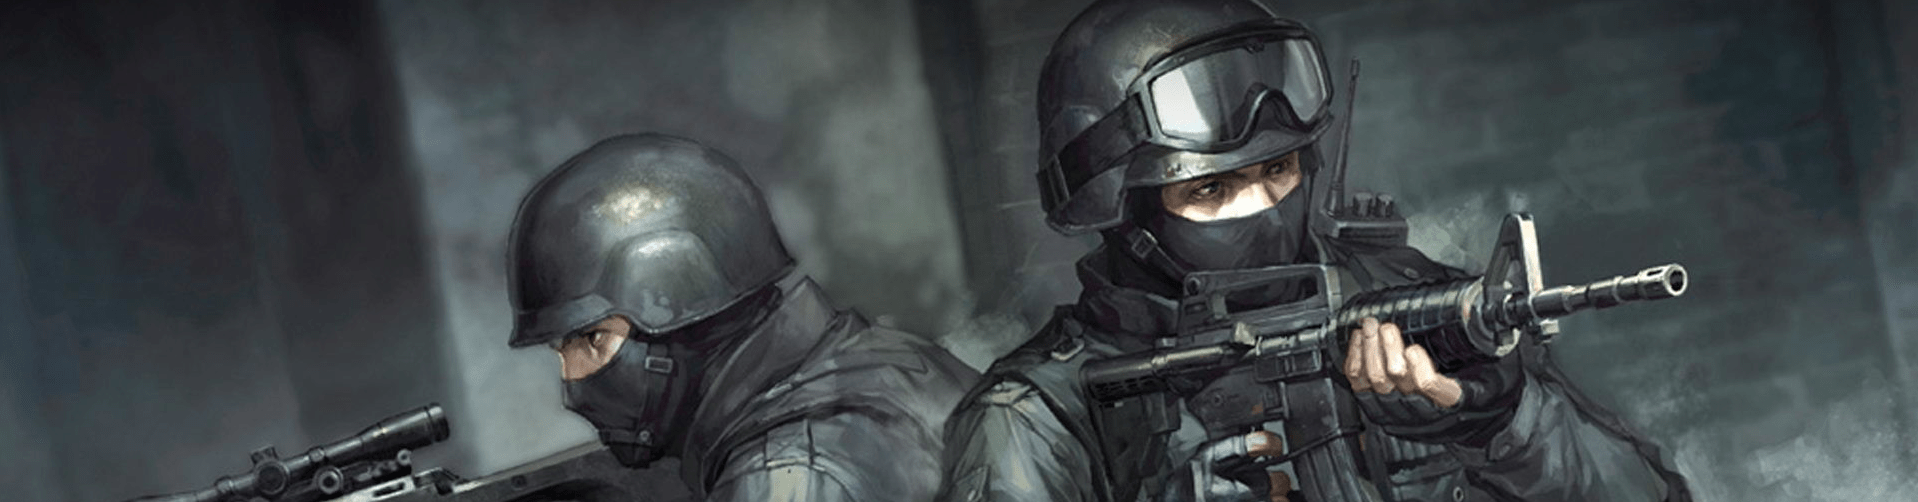 counter strike source cover image